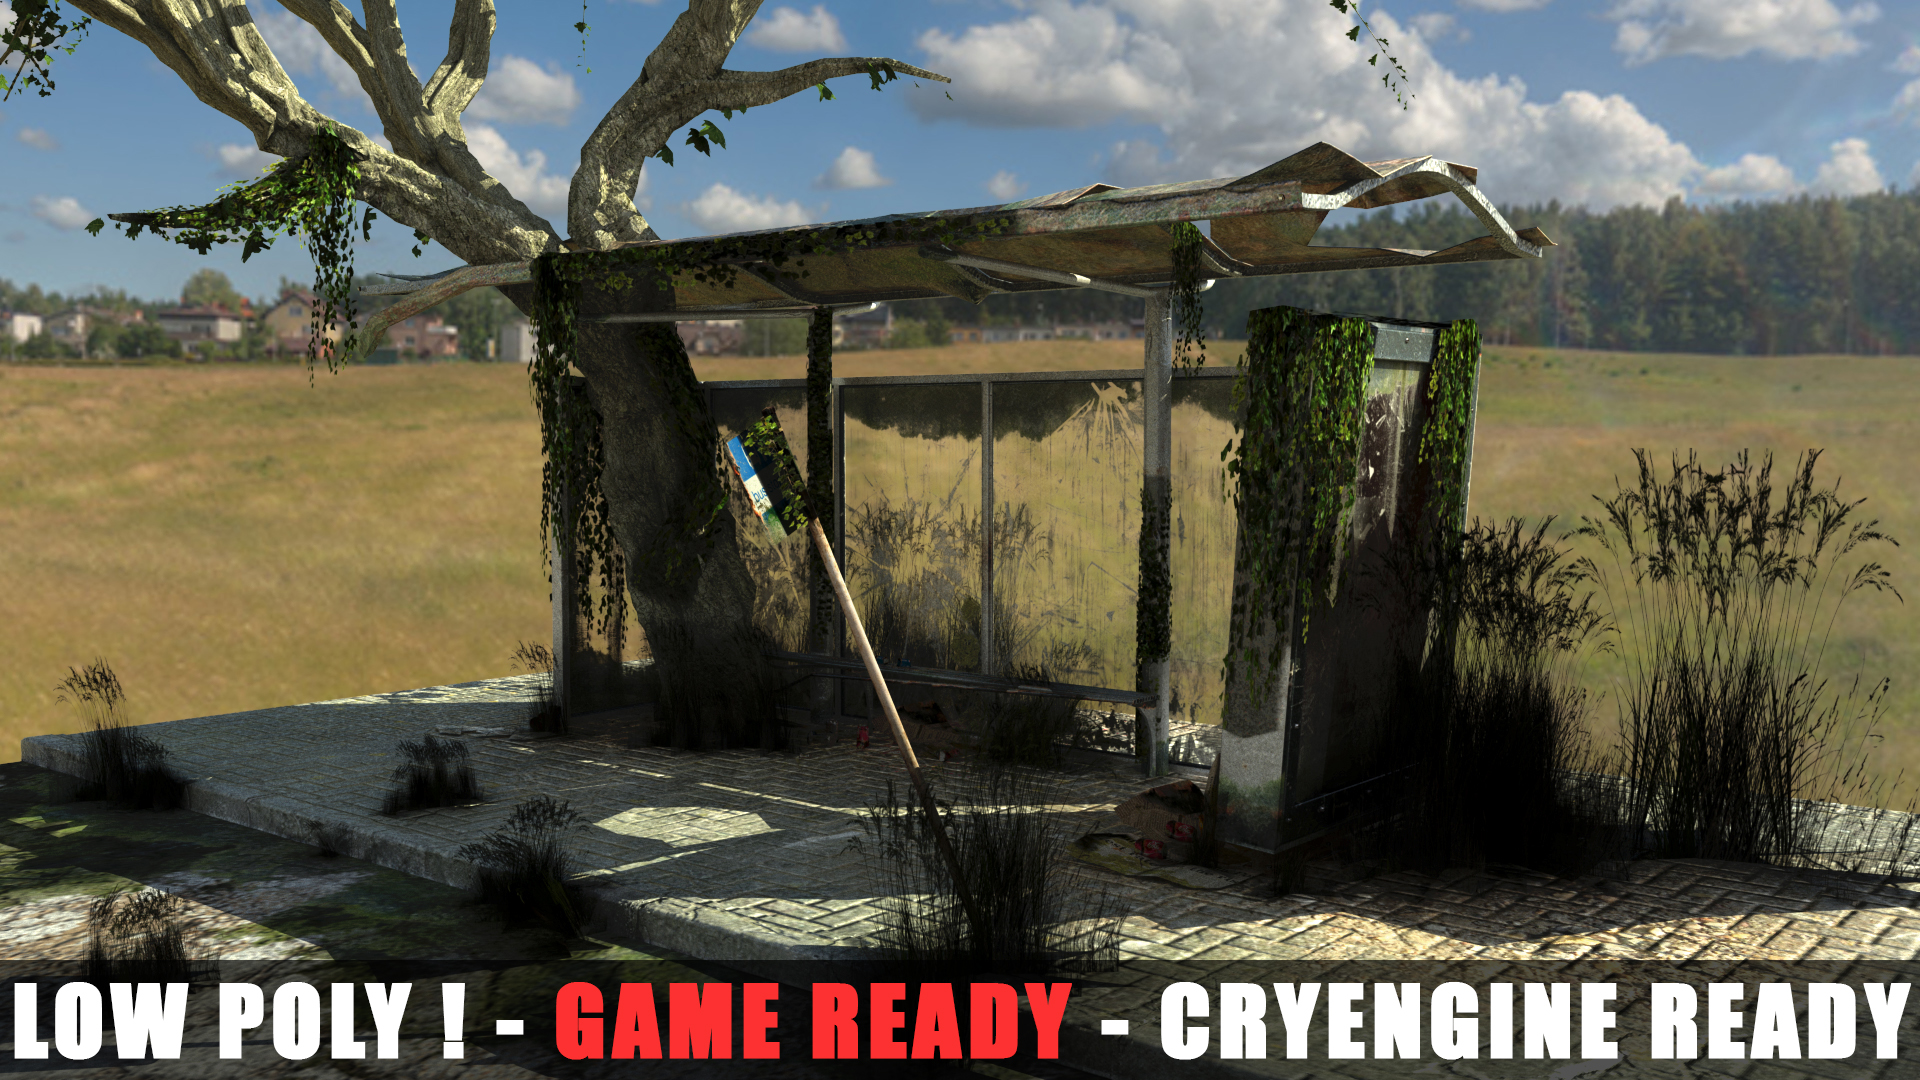 Apocalyptic Bus Stop(Cryengine Ready-File included) 3D Model